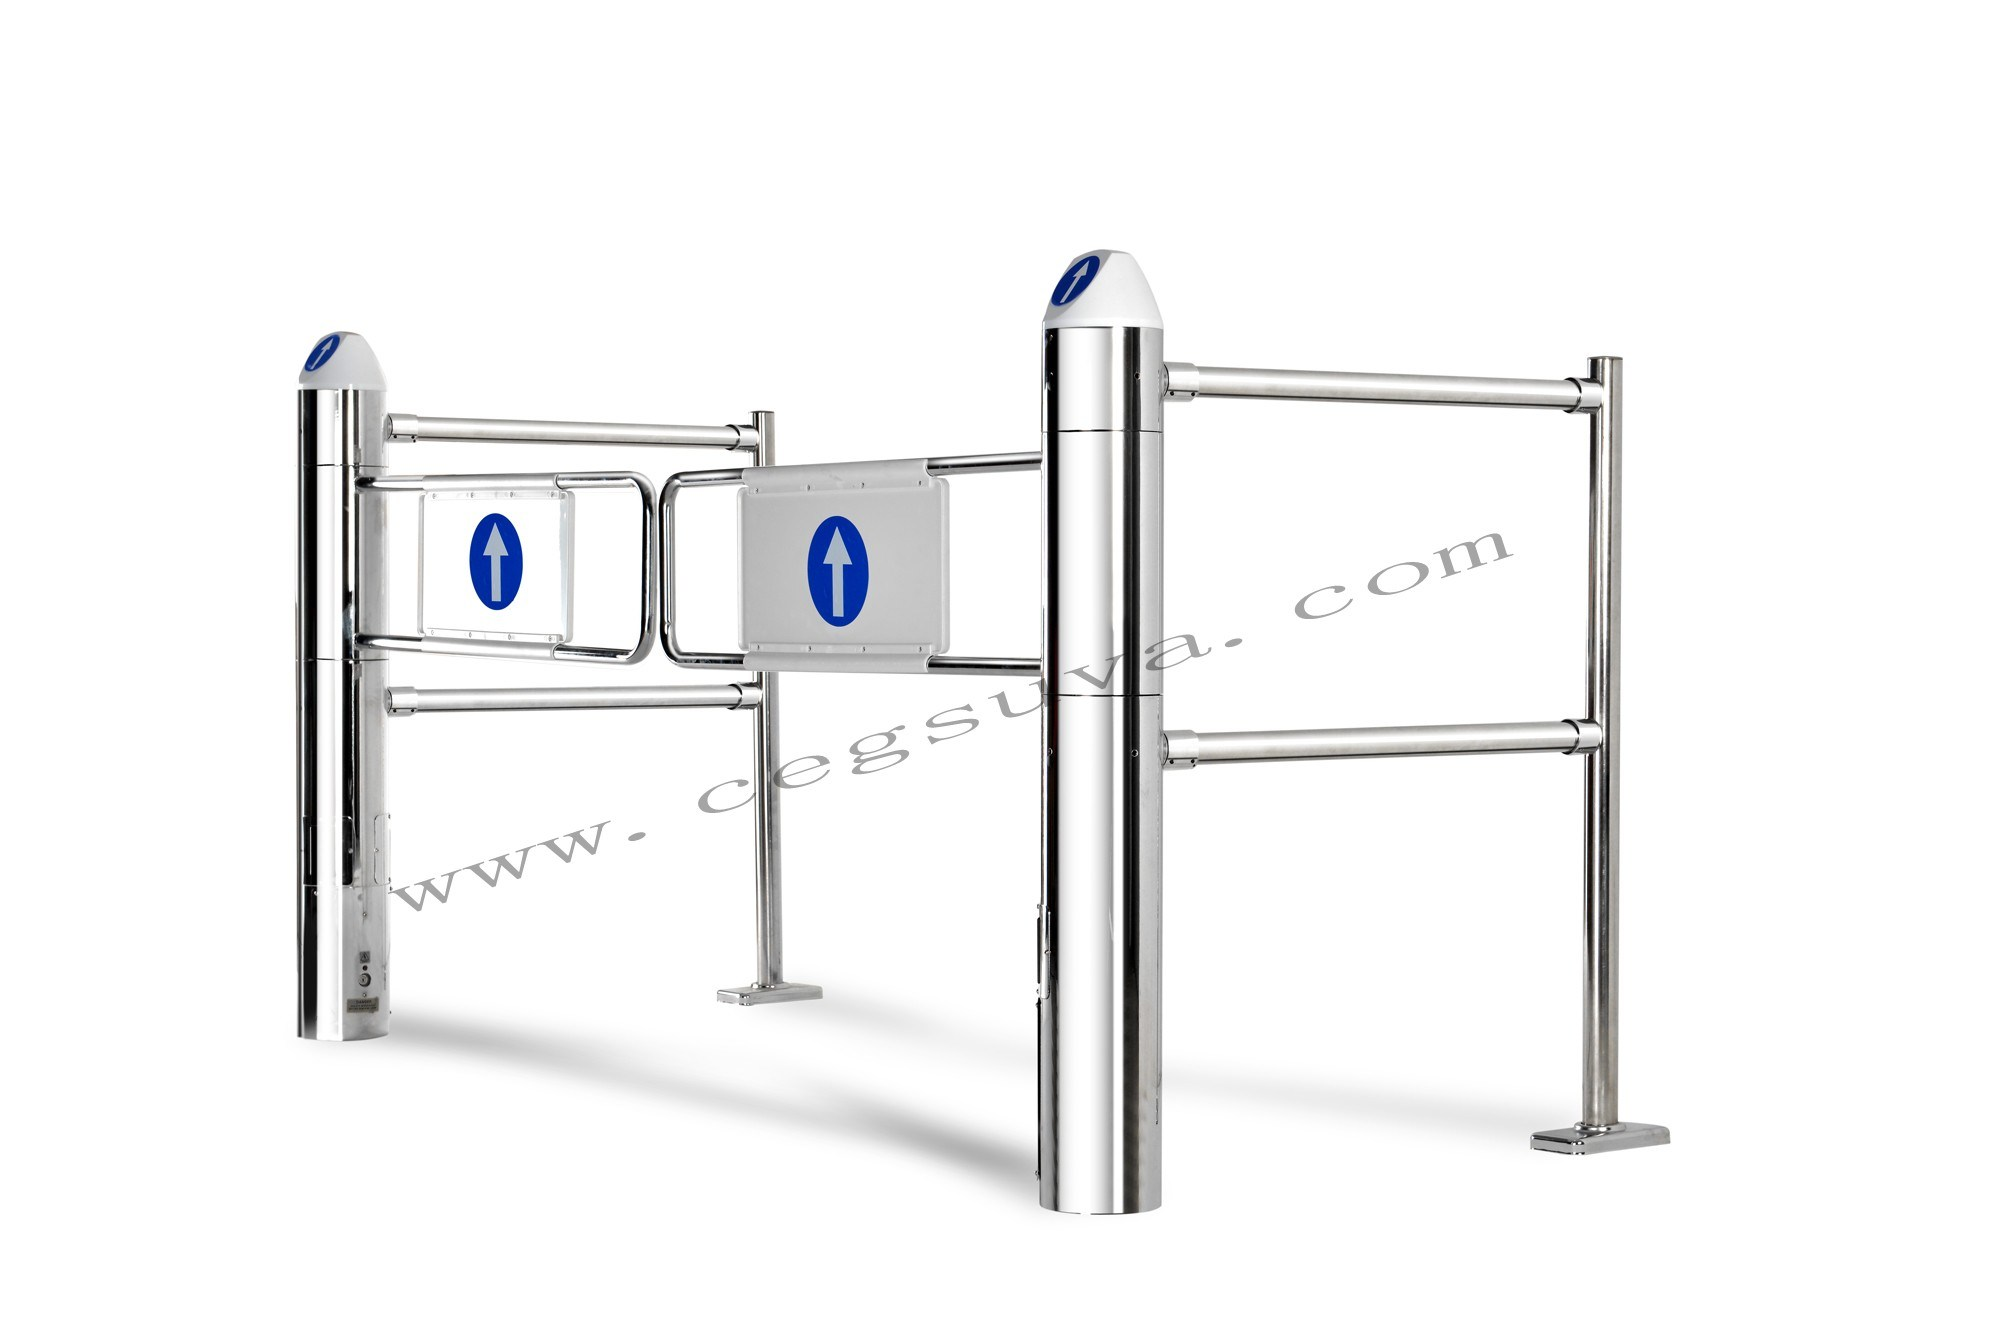 (CE) Supermarket Entrance Gate, Electric Gate, Automatic Gate, Rotogate, Swing Gate